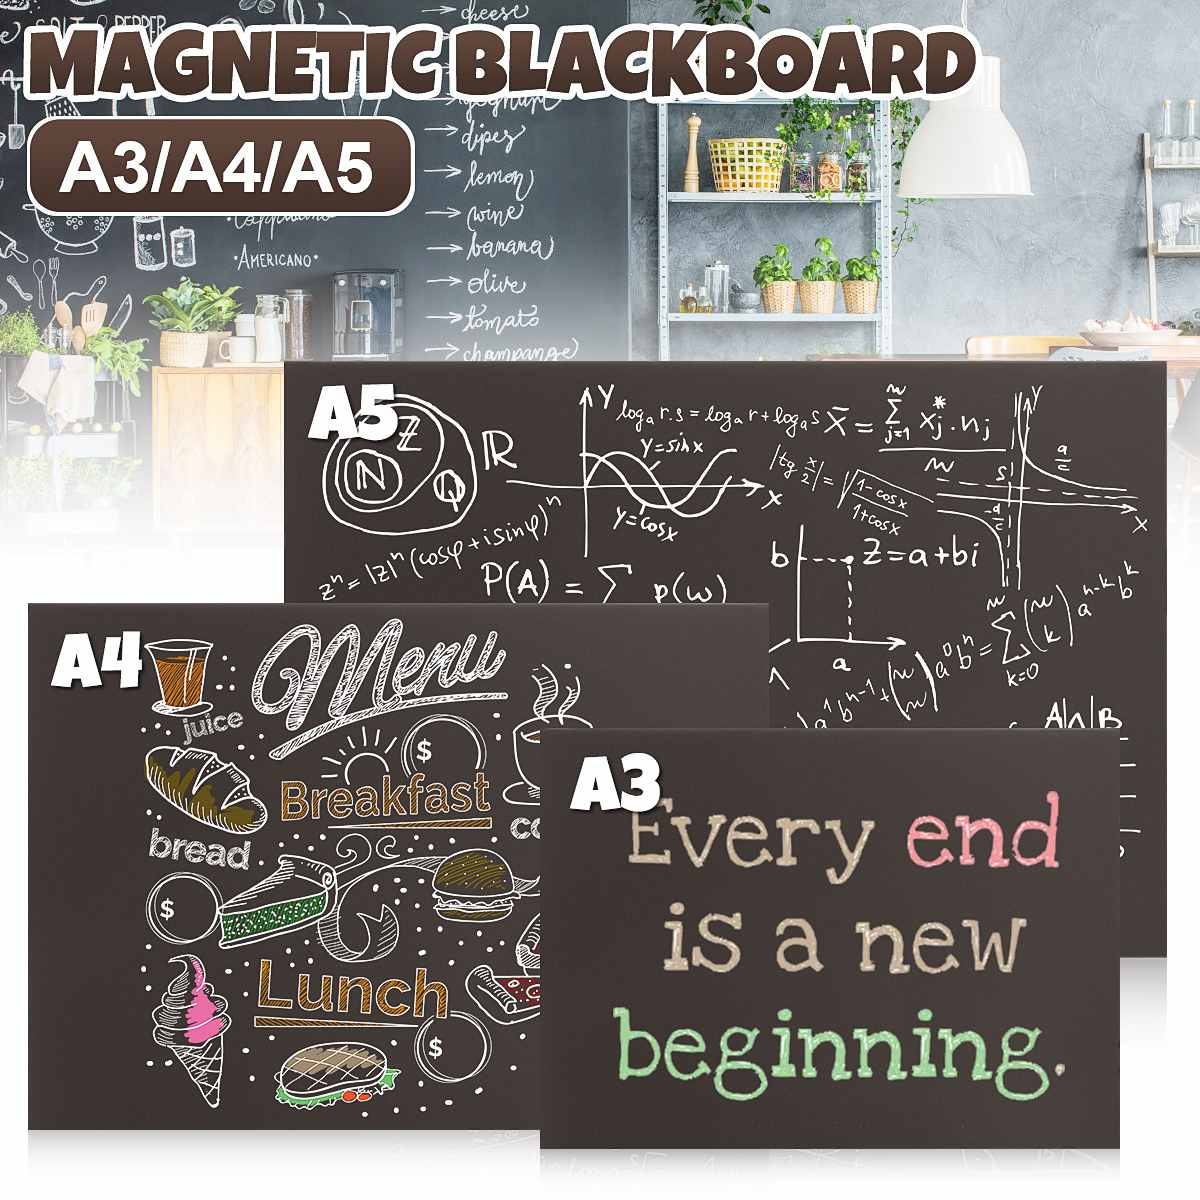 A3 A4 A5 Chalk Board Blackboard Sticker Waterproof Removable Kids Writing Board Art Home Wall Sticker Supplies Decor Accessories